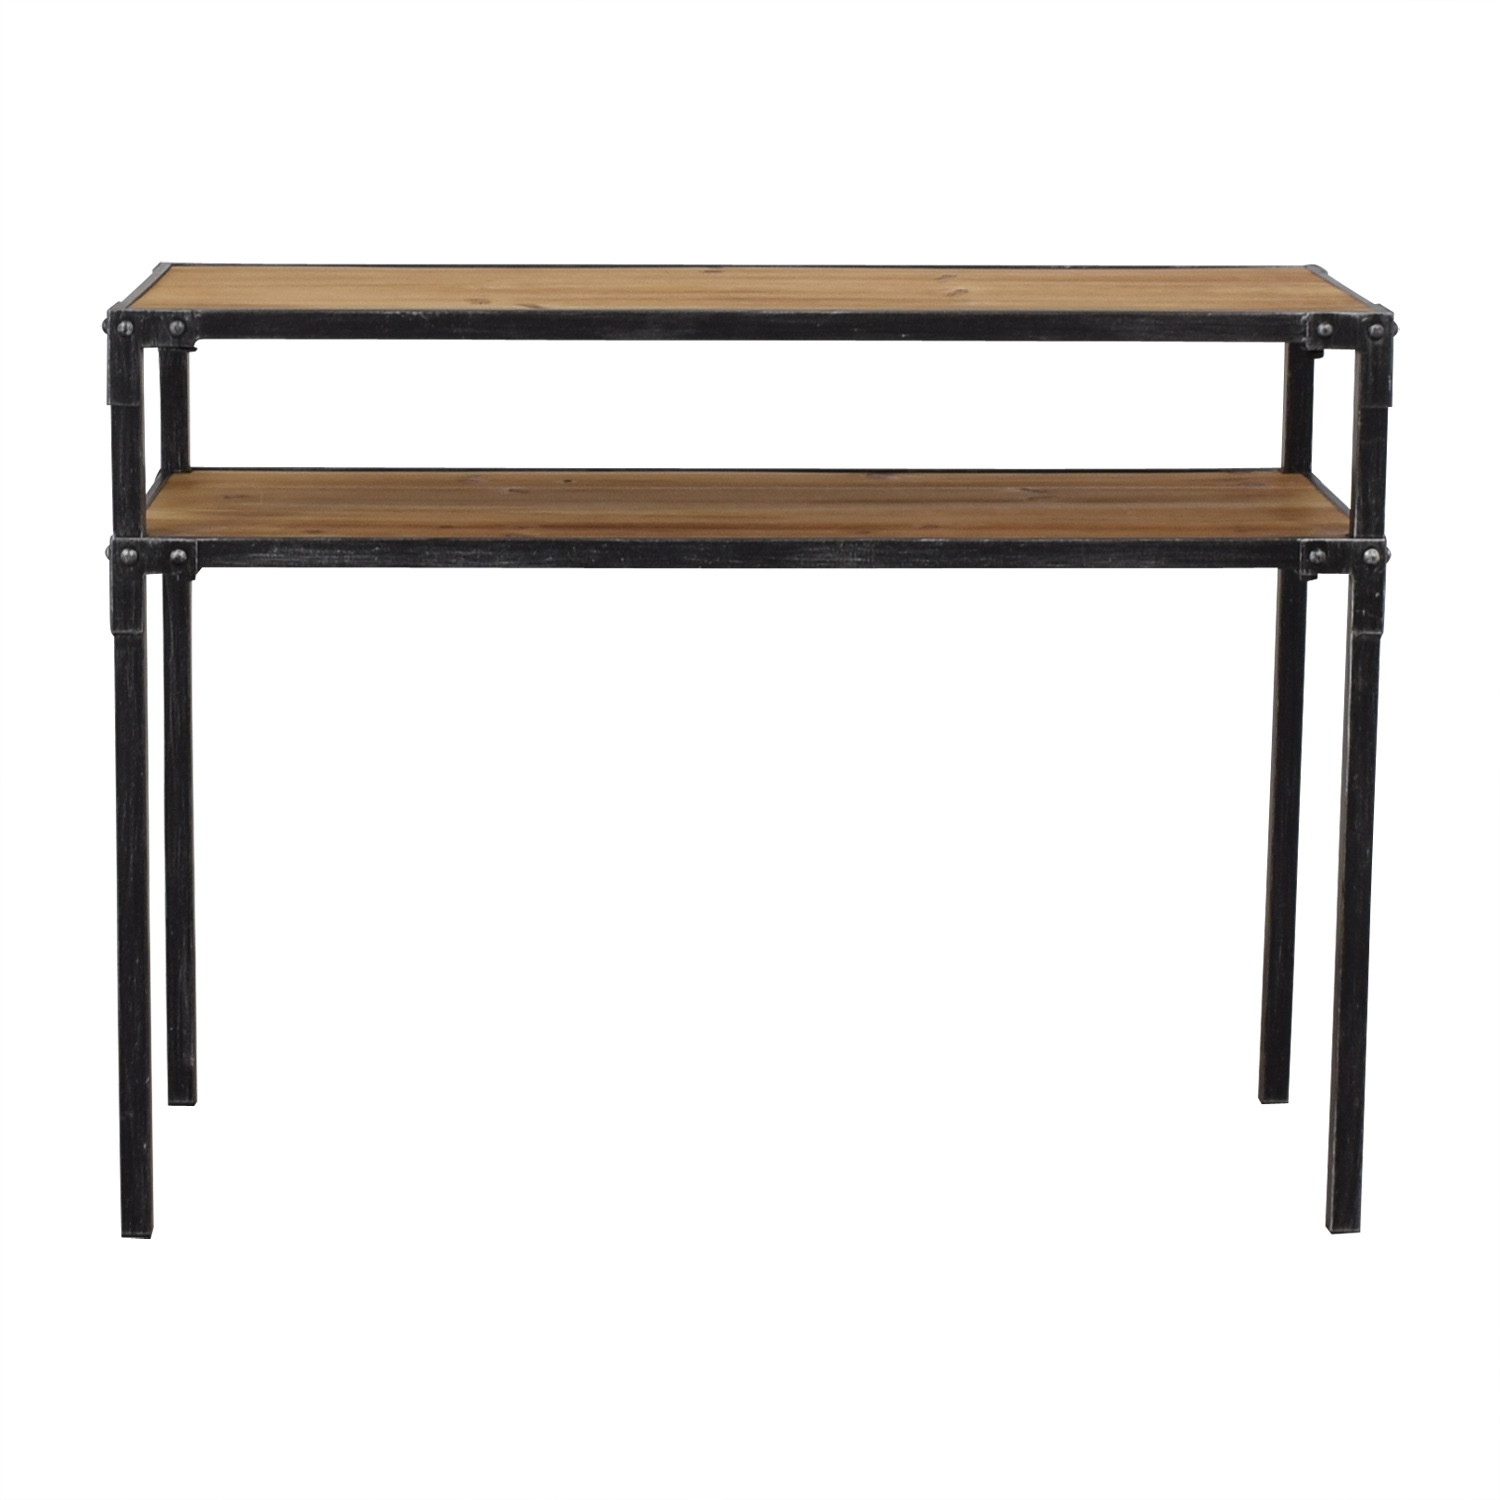 Hayneedle Hayneedle Two Tier Console Table Accent Tables